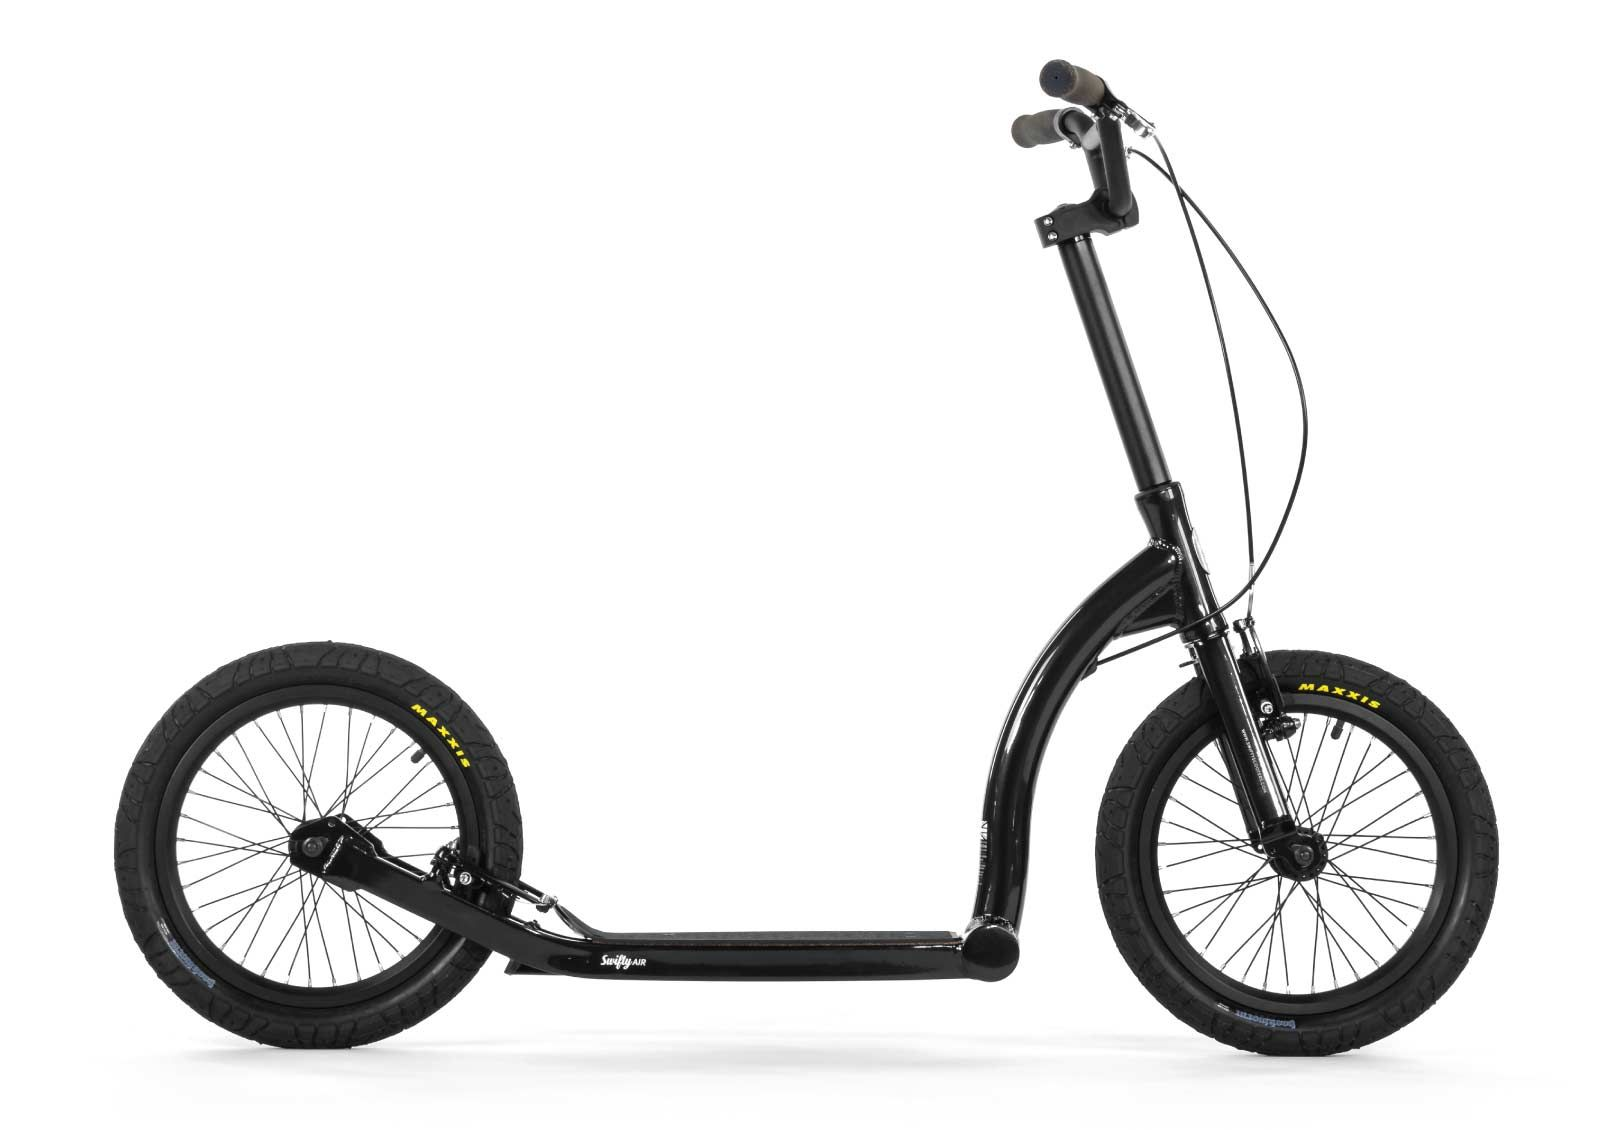 Swiftyair Adult Scooter Dirt Scooter